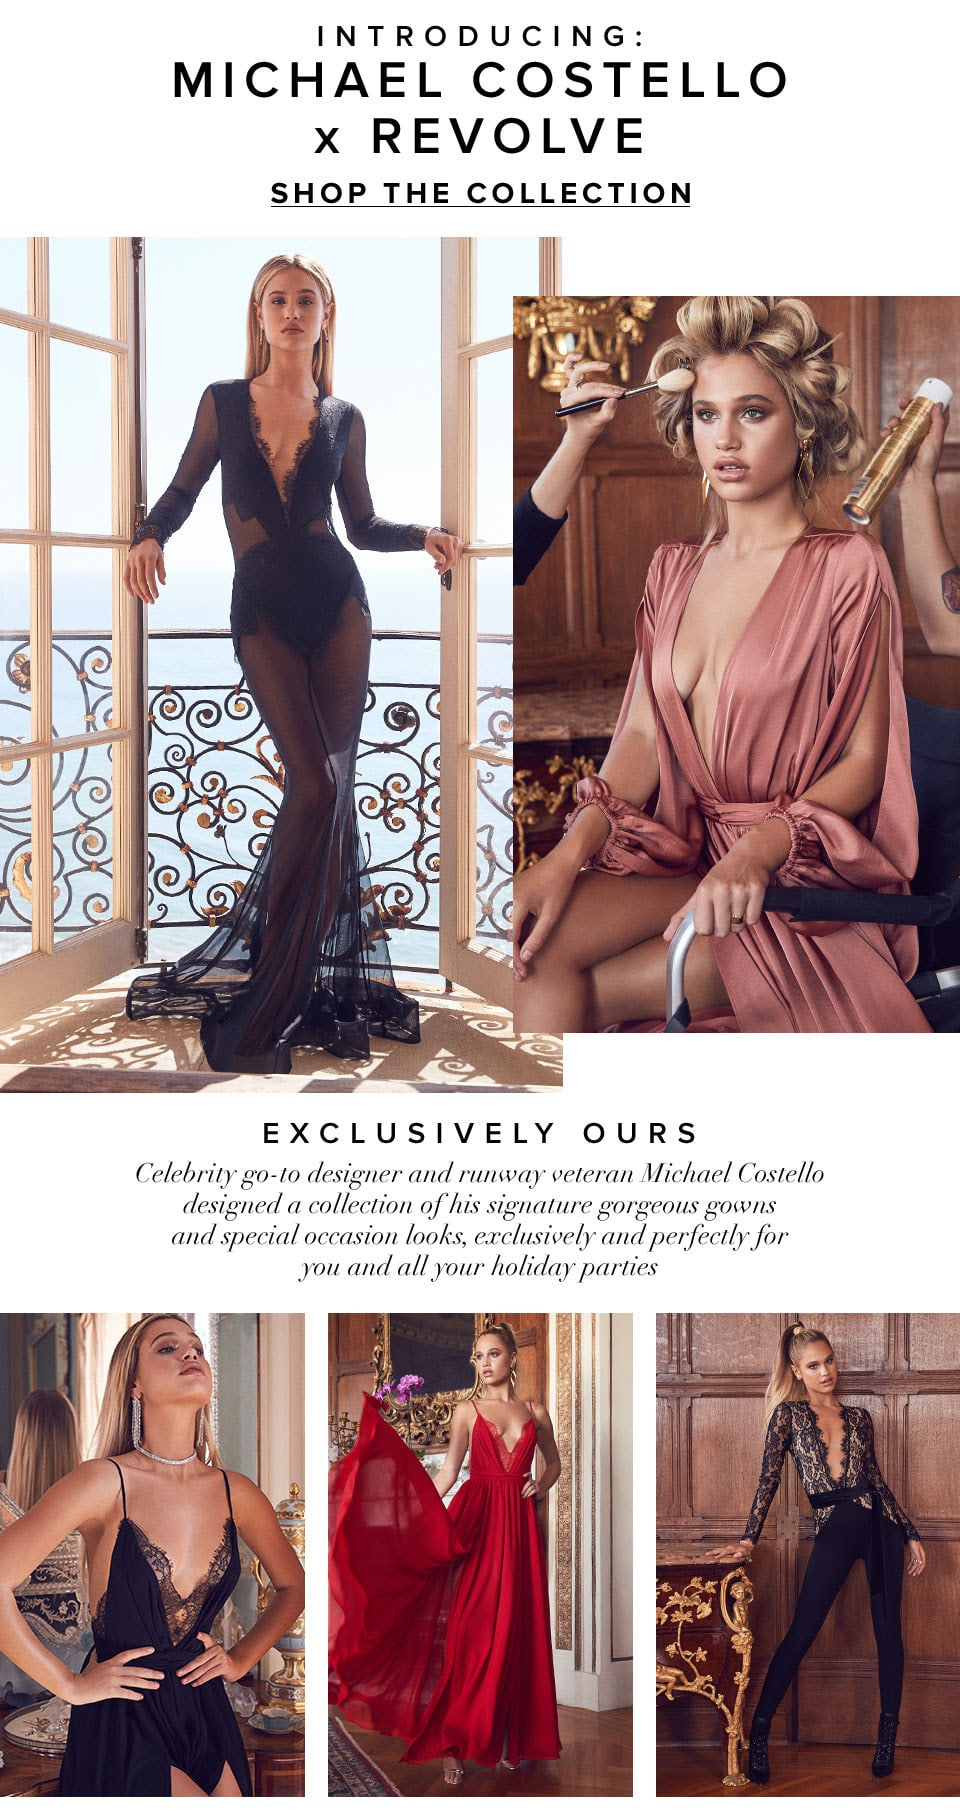 Introducing: Michael Costello x REVOLVE, exclusively ours. Celebrity go-to designer and runway veteran Michael Costello designed a collection of his signature gorgeous gowns and special occasion looks, exclusively and perfectly for you and all your holiday parties. Shop the Collection.